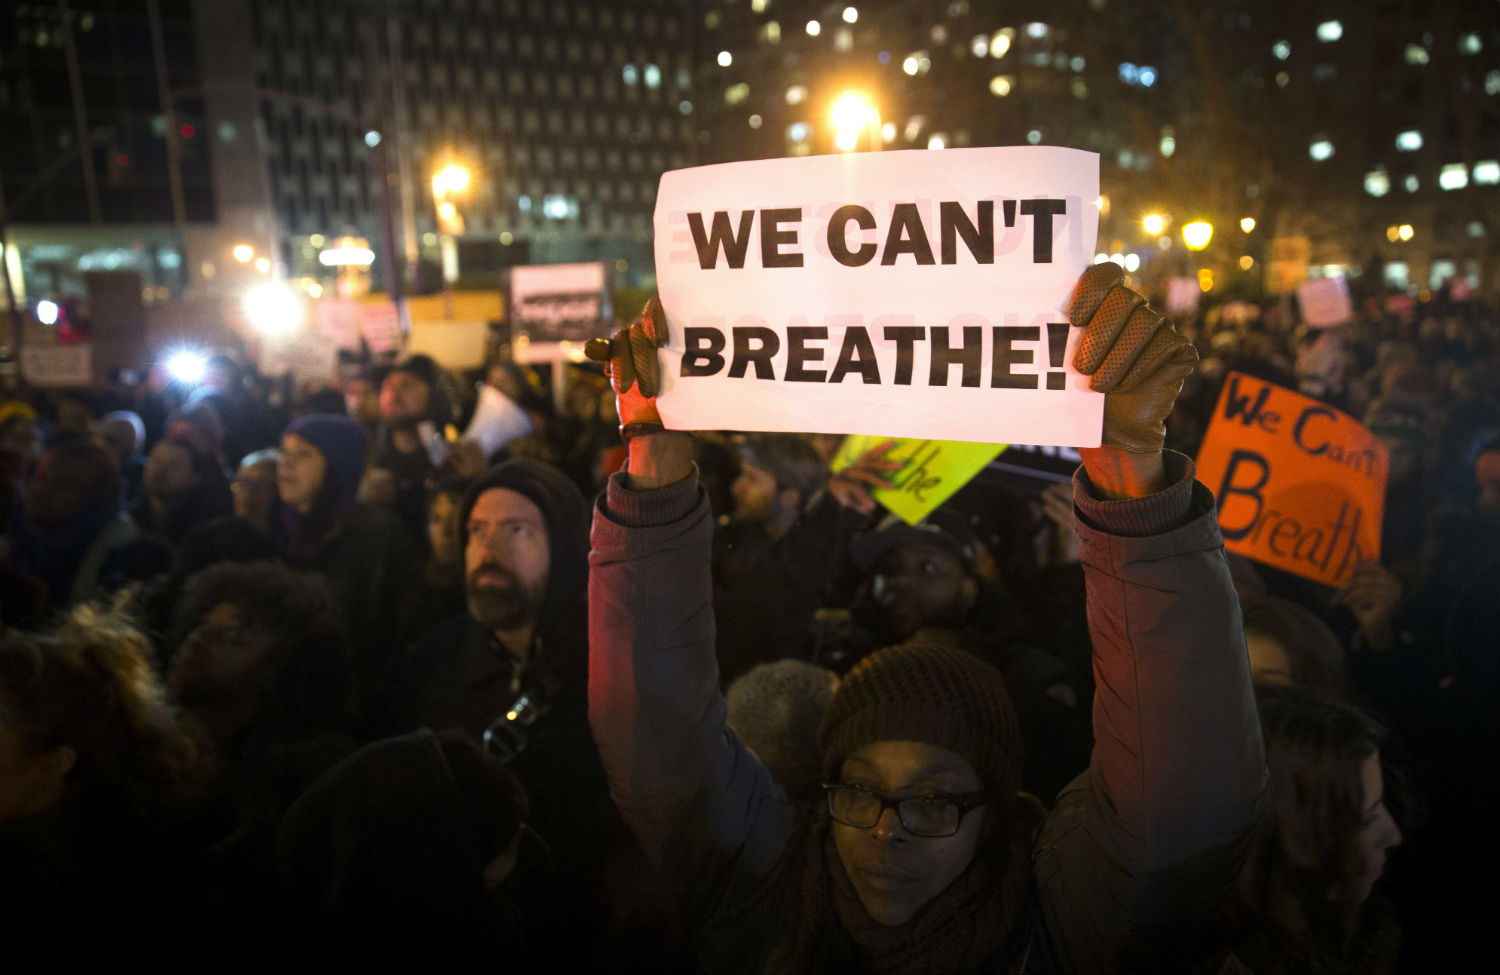 Why American society can no longer breathe